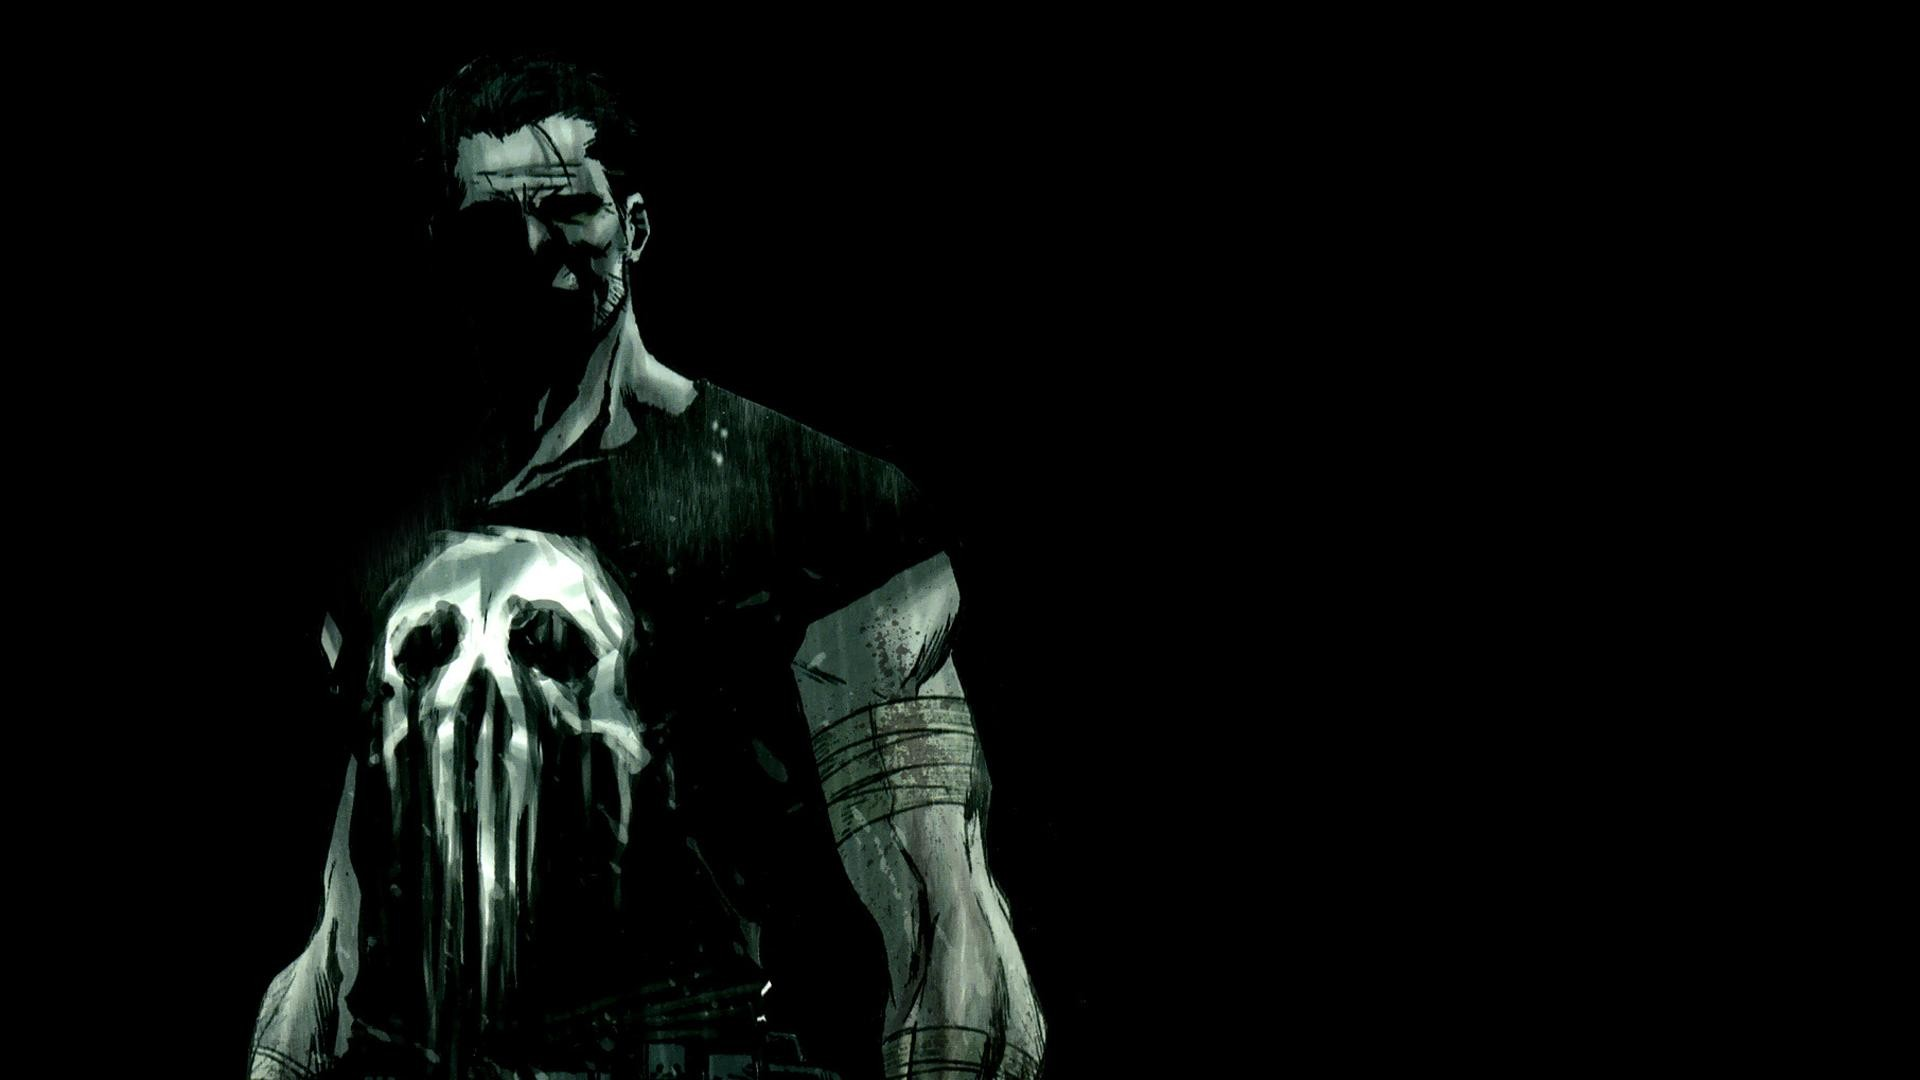 Res: 1920x1080, Punisher Wallpapers,  px – Wallpapers PC Gallery for PC & Mac,  Laptop, Tablet, Mobile Phone